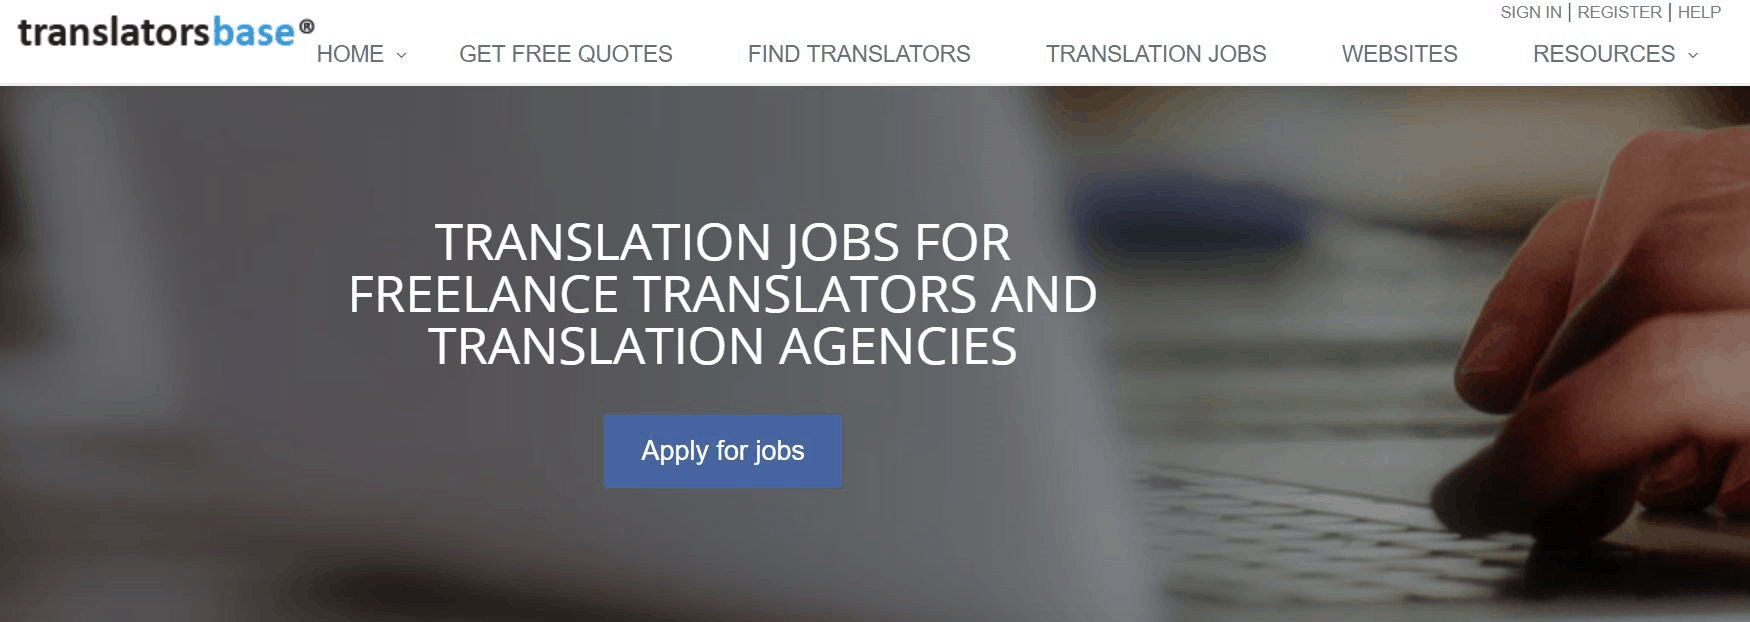 5 Best Freelance Websites for Hiring Translators-image5